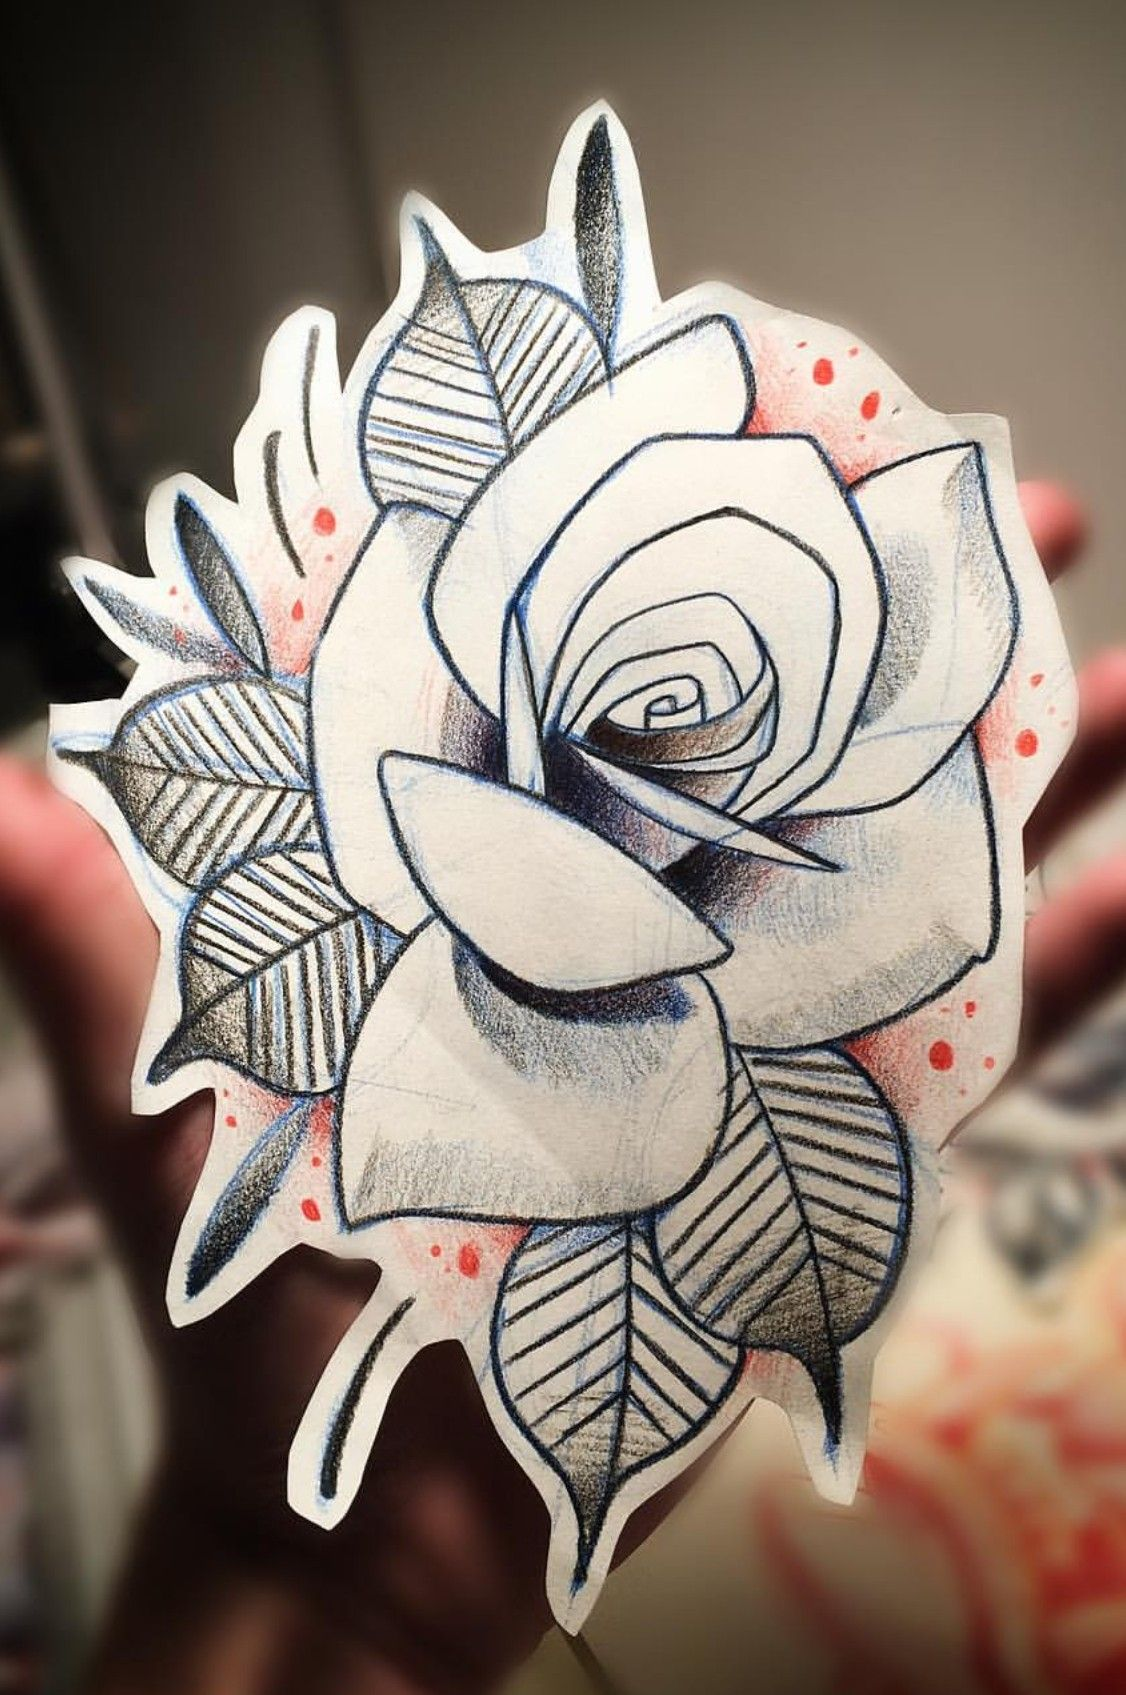 Pin By Geberson Delgar On Referencias Neotradicional Traditional Rose Tattoos Rose Drawing Tattoo Neo Traditional Roses